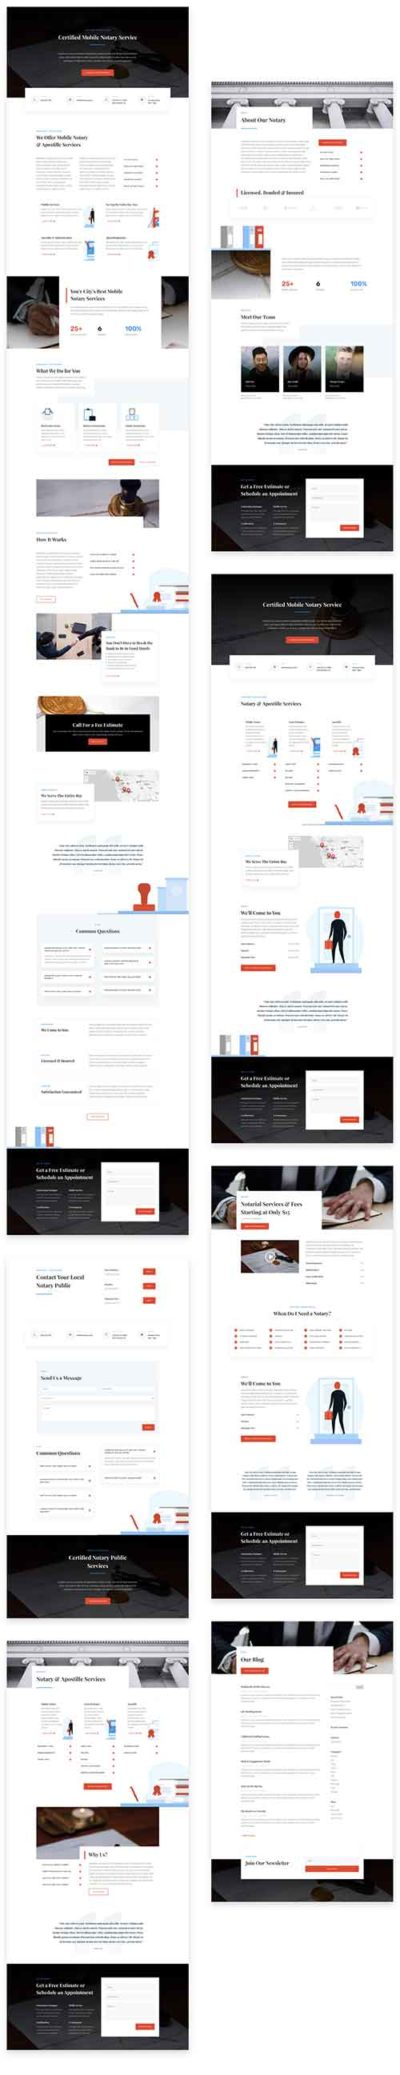 Notary Service web template